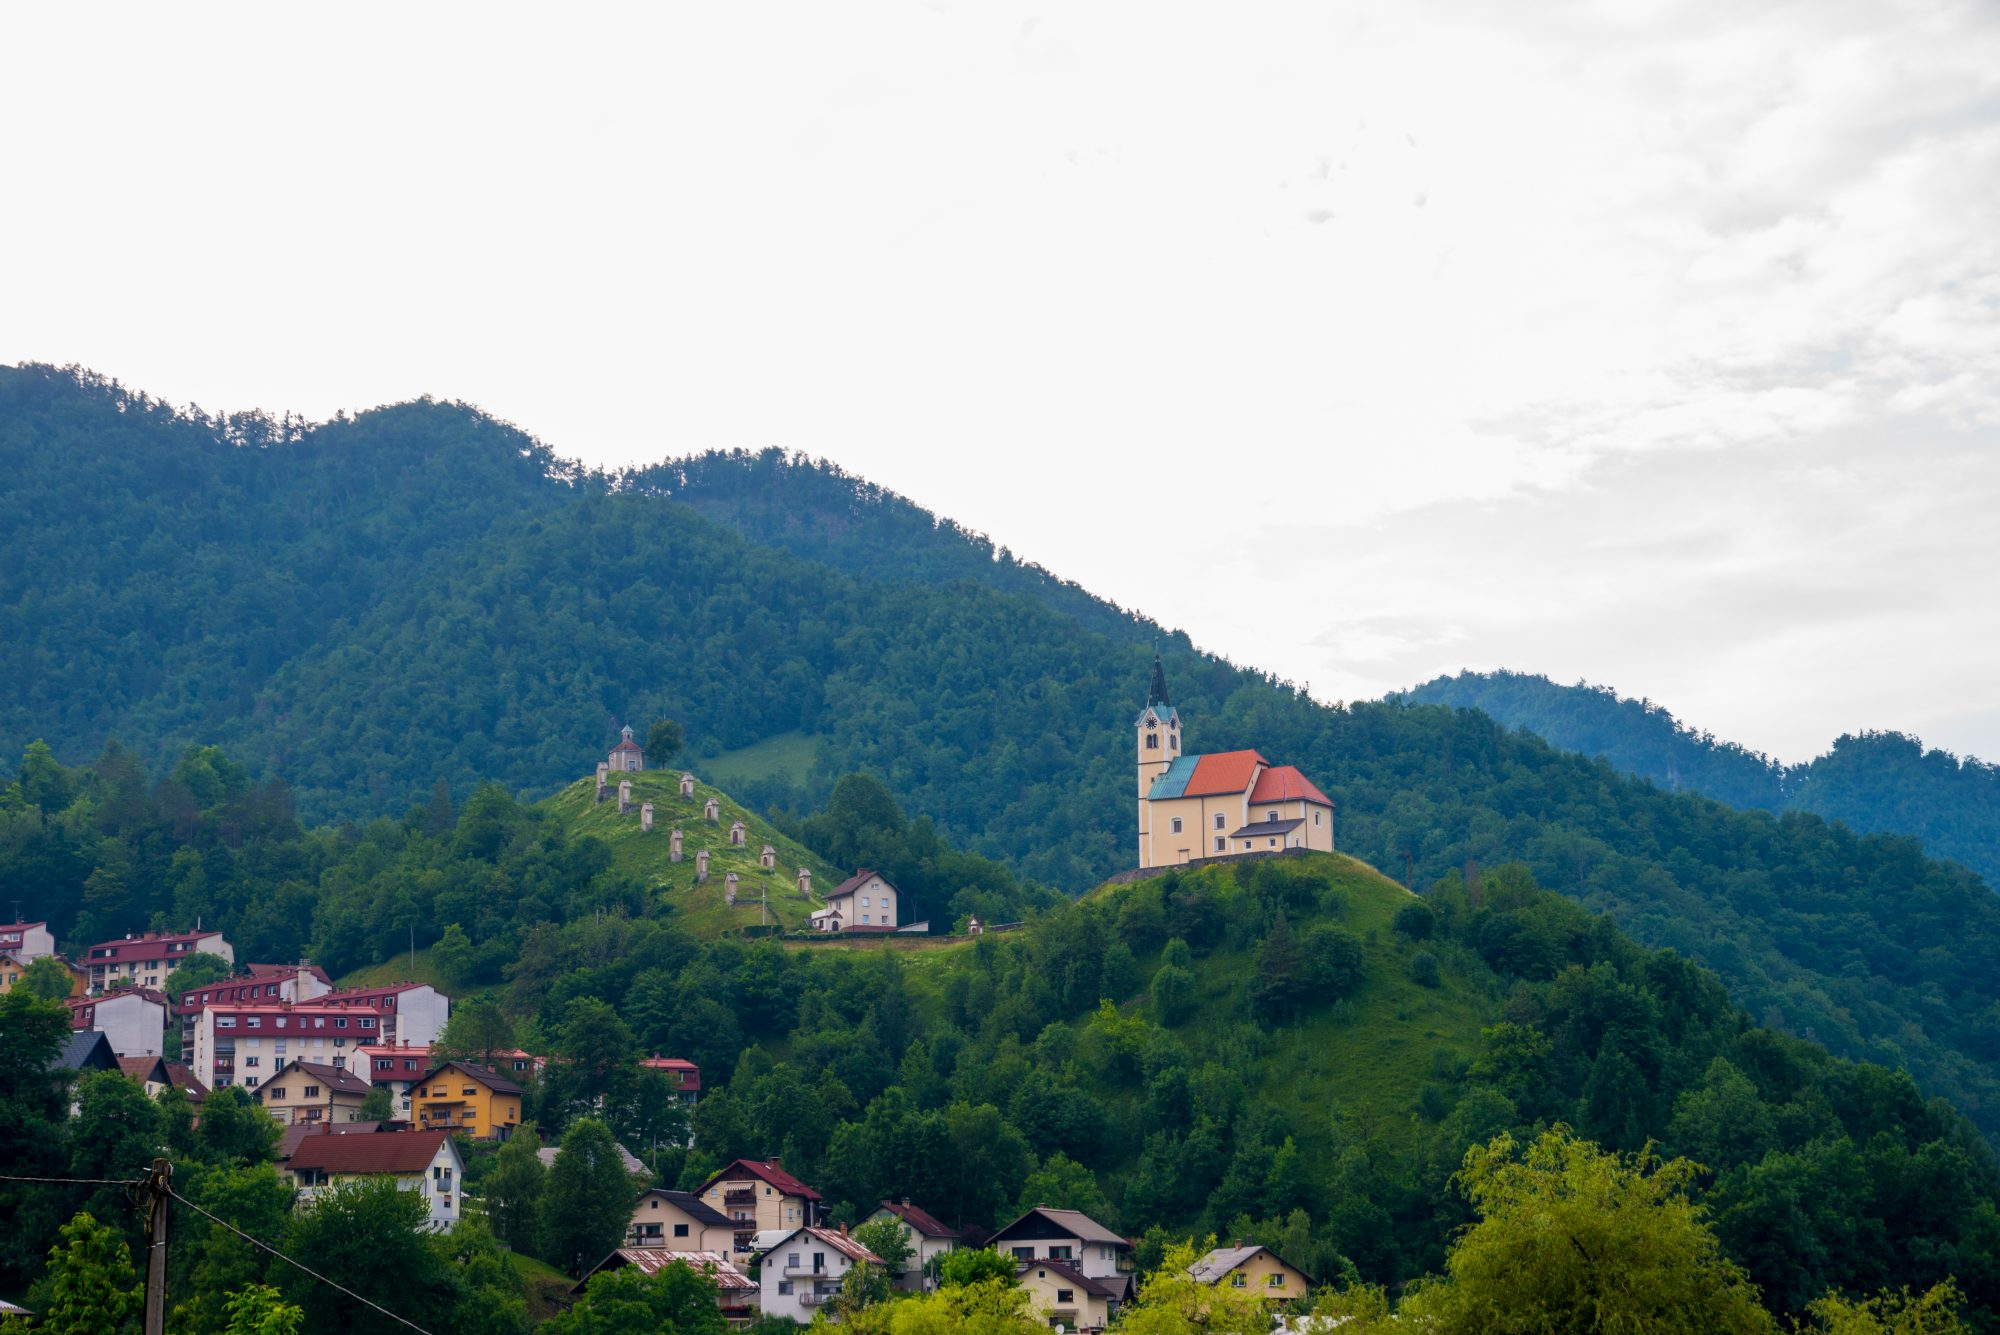 Idrija, North West Slovenia